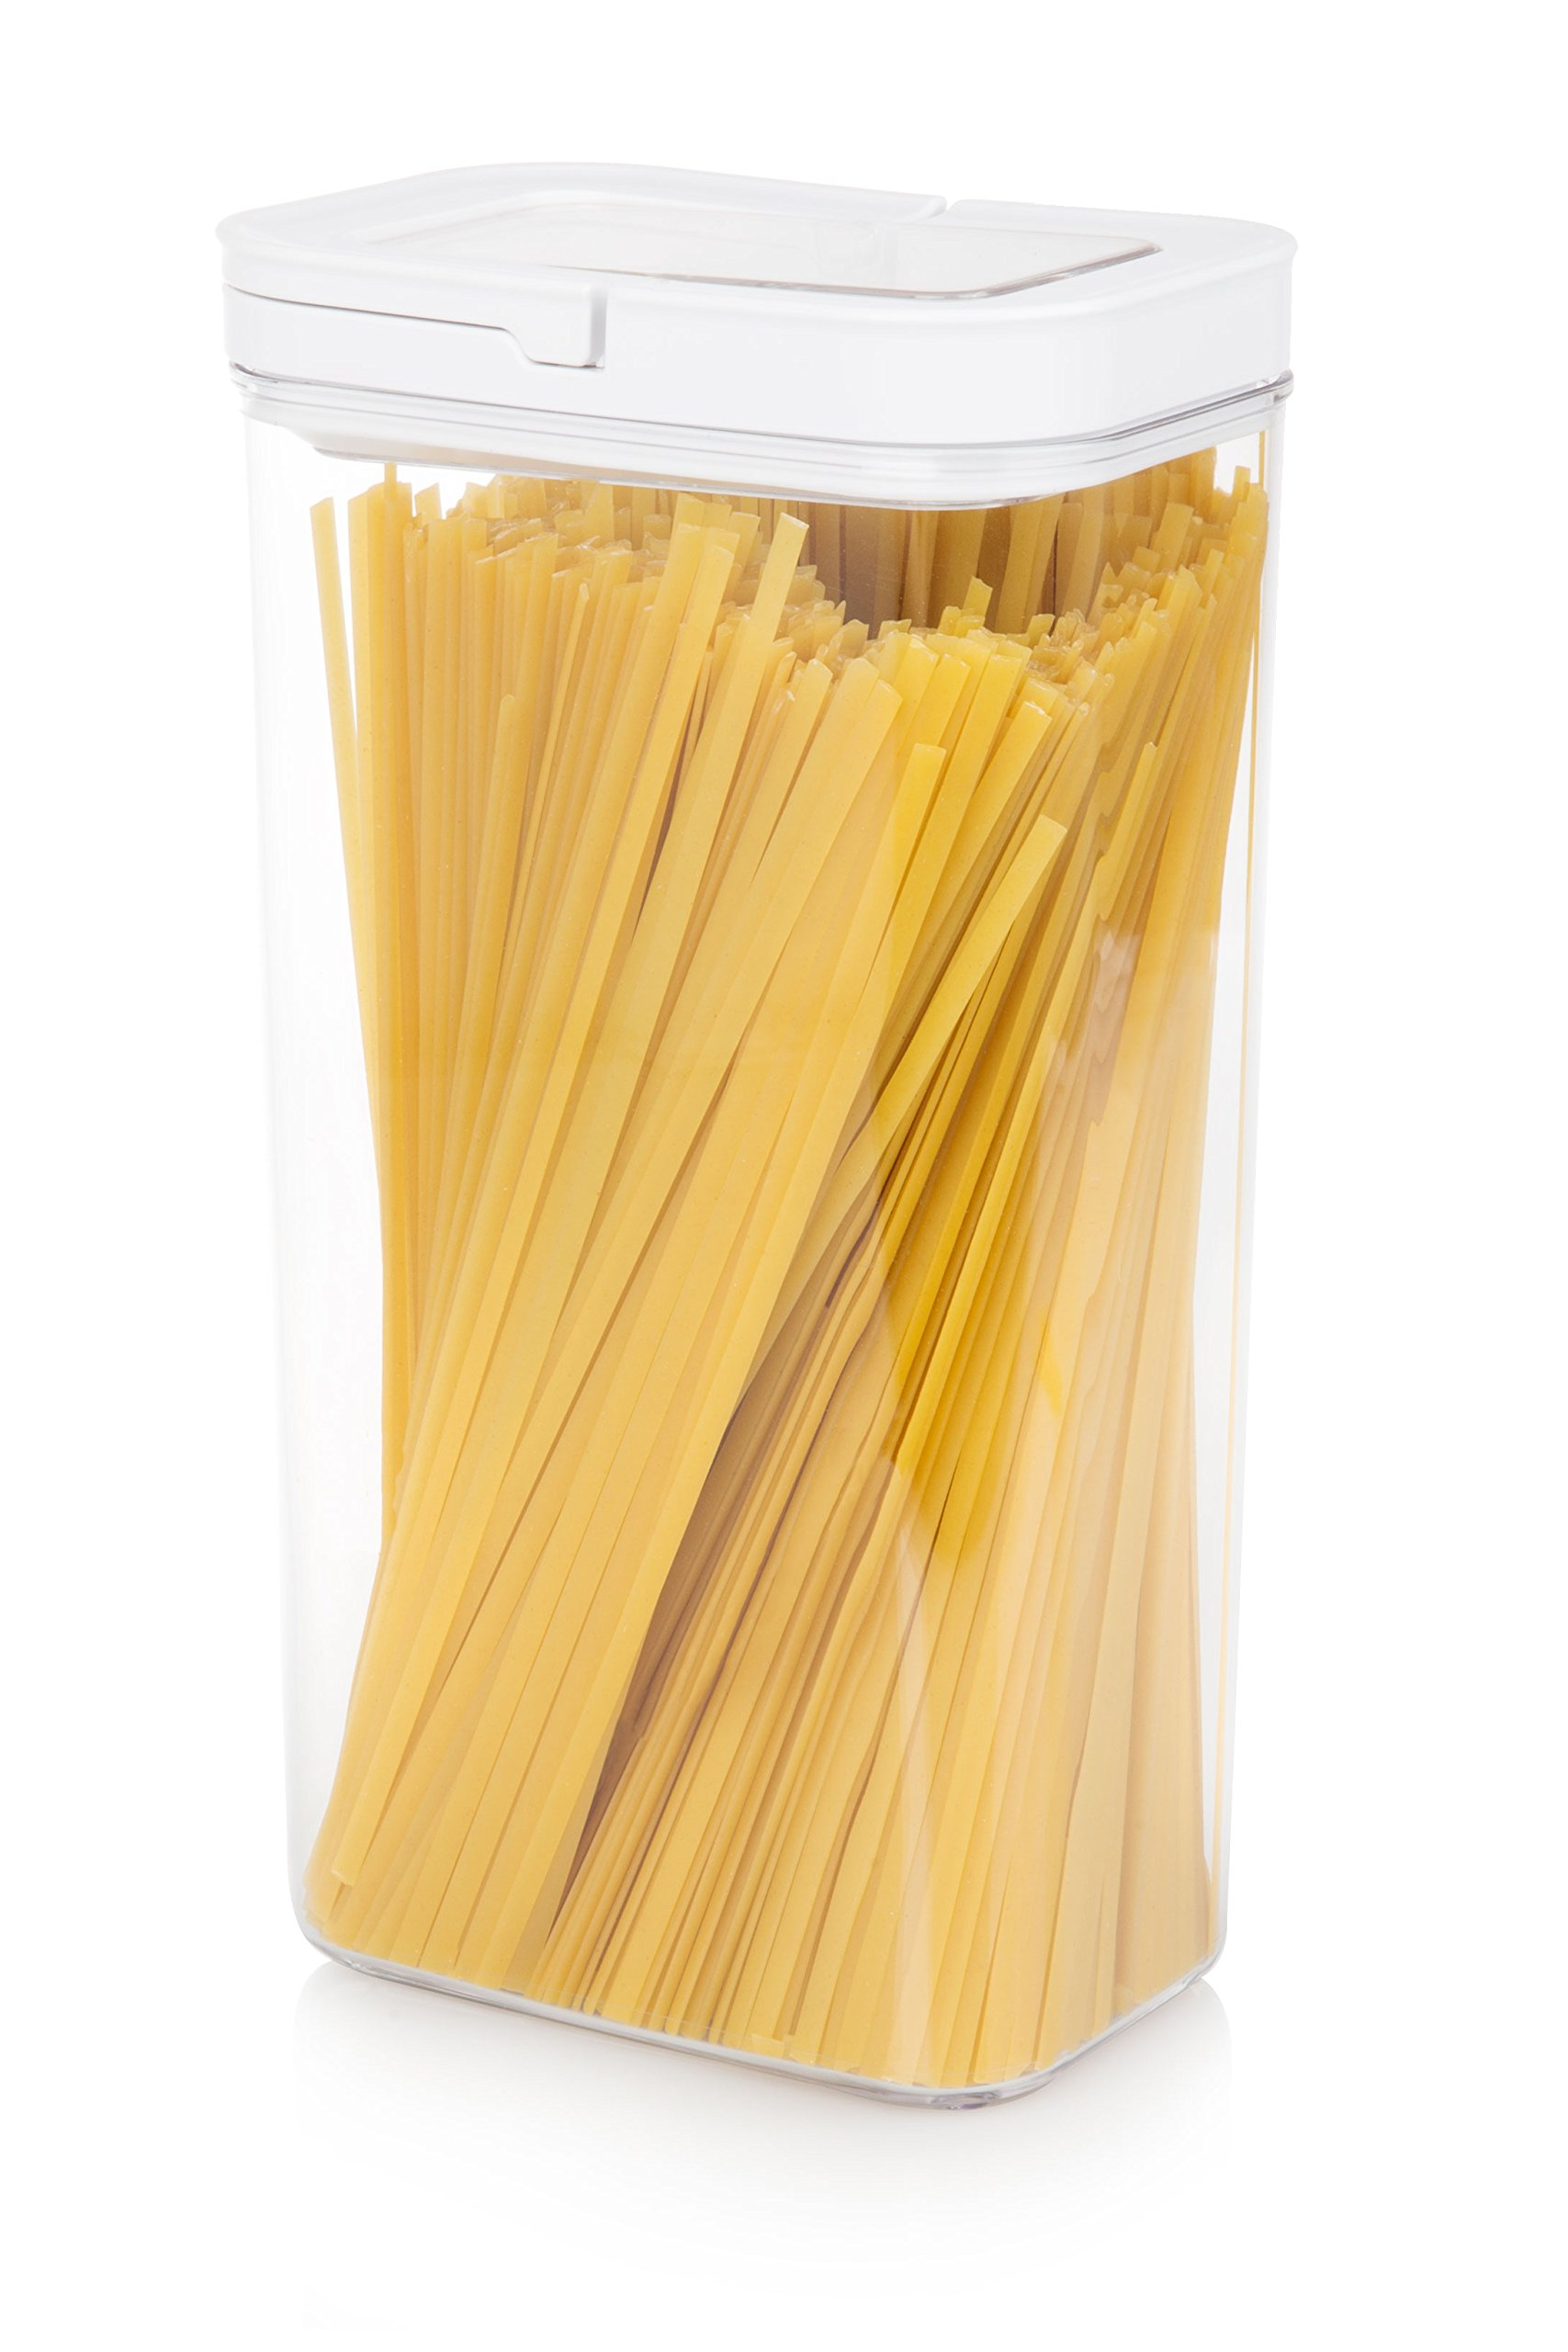 Airtight Food Storage Container - Extra Large 3600ml Stackable Canister for Cereal, Flour, Sugar, Rice, Pasta and More - Organization for Drawers or Pantry - Air Tight Seal with Clear Lid - BPA-Free